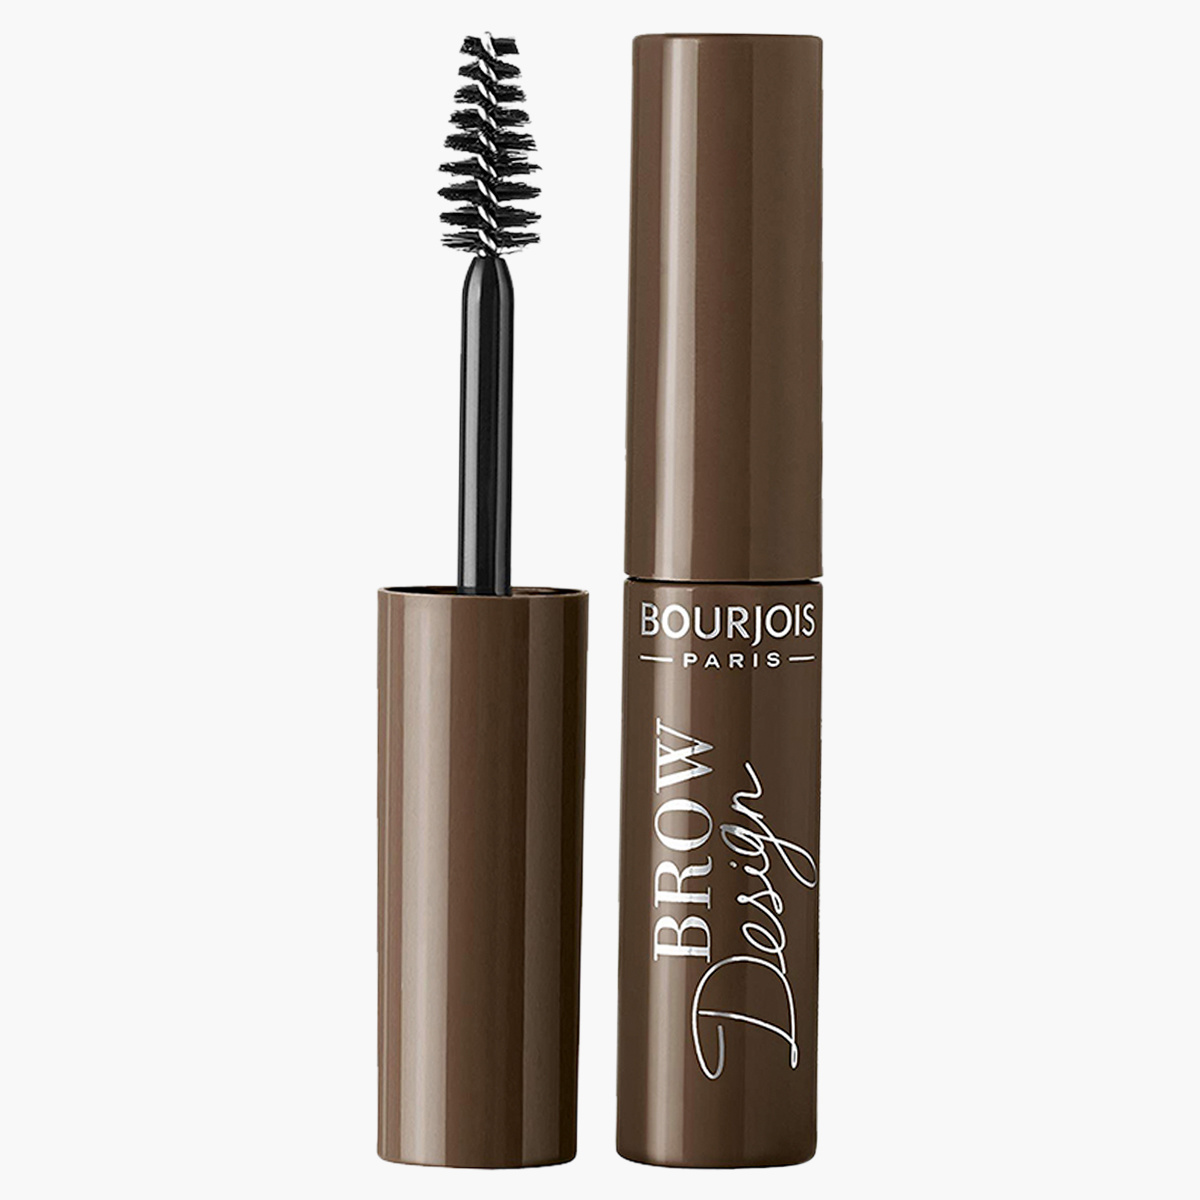 Bourjois Brow Design Brow Gel - No.02 Chatain